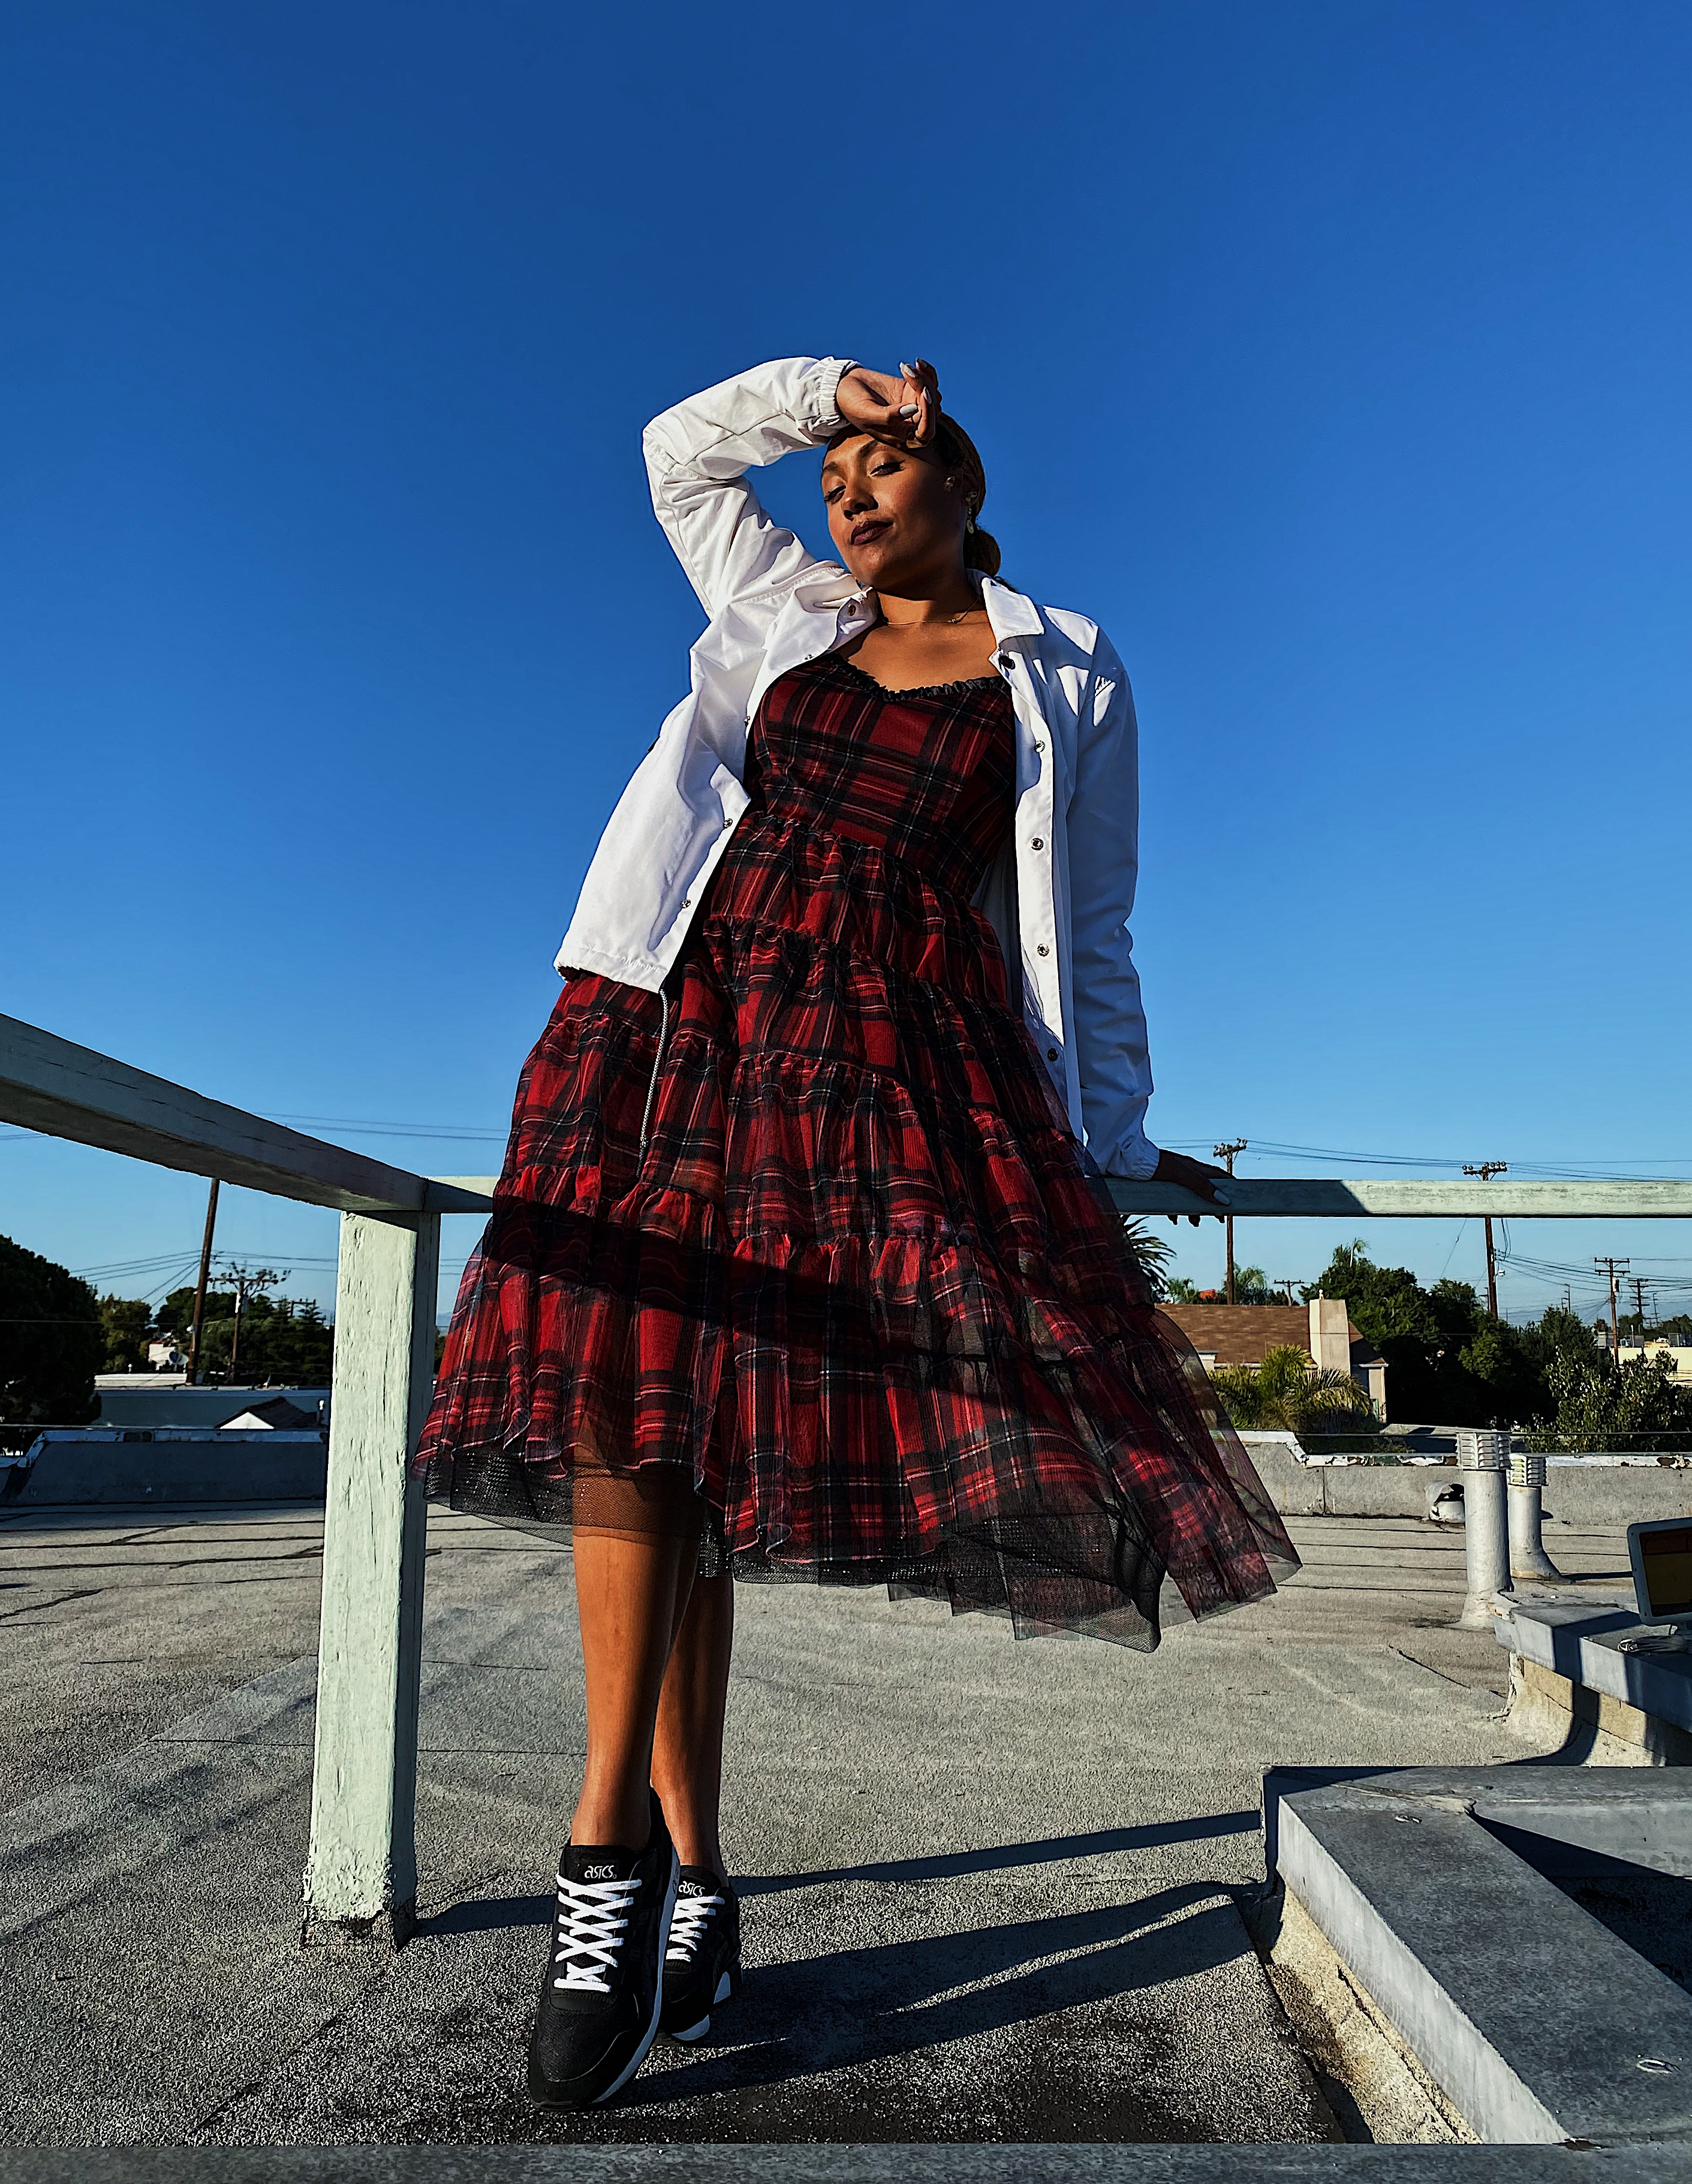 wear who you are-personal style-plaid dress with jacket-sporty lux-fit femme